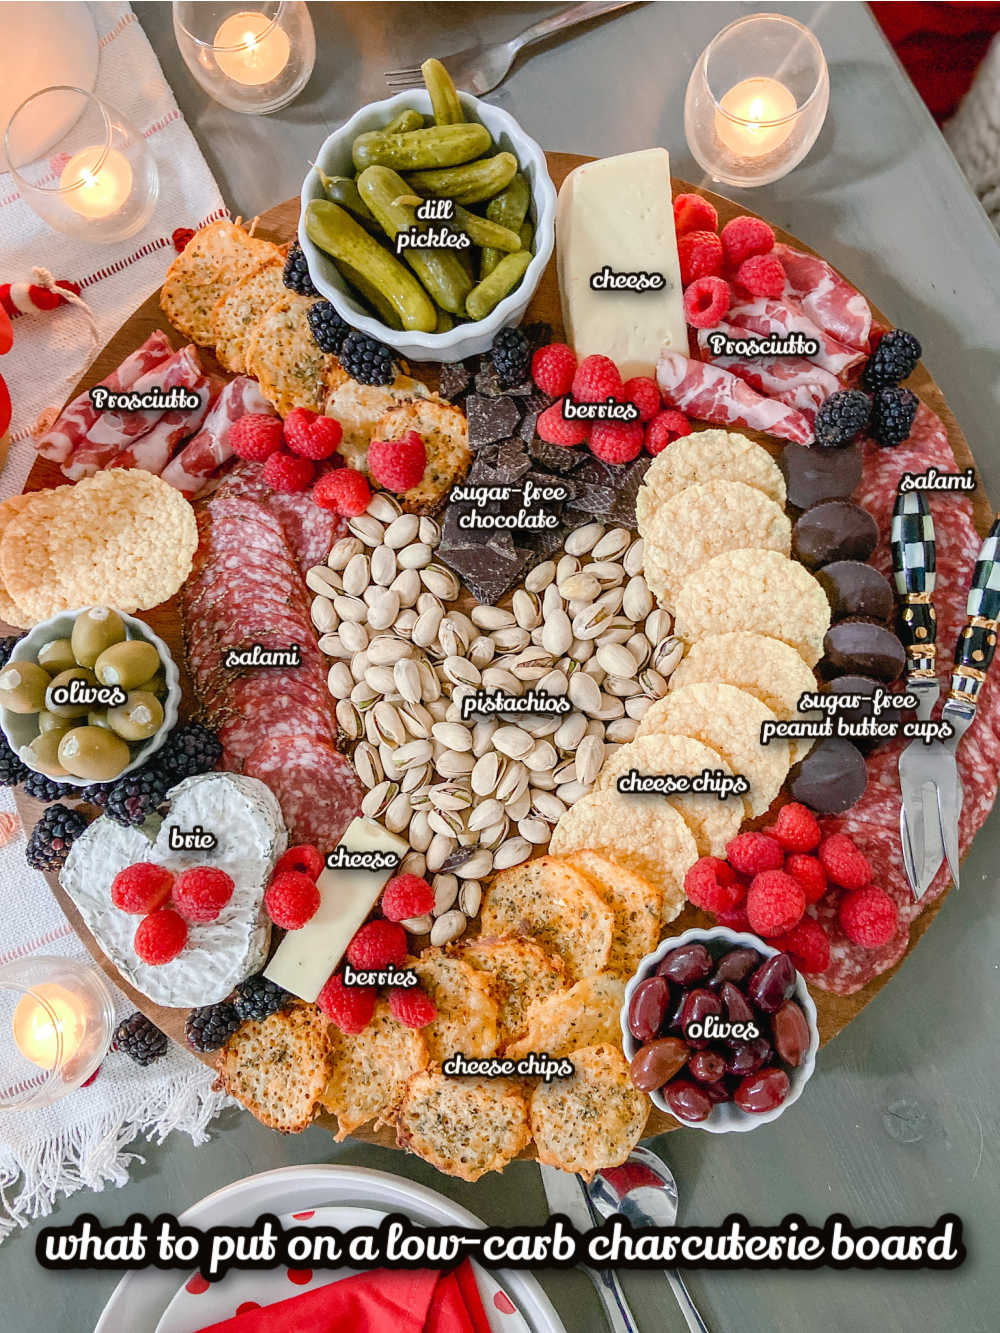 The easiest low-carb keto Charcuterie board. Enjoy low-carb snacks for Valentine's Day with these delicious nibbles that are also keto-friendly!